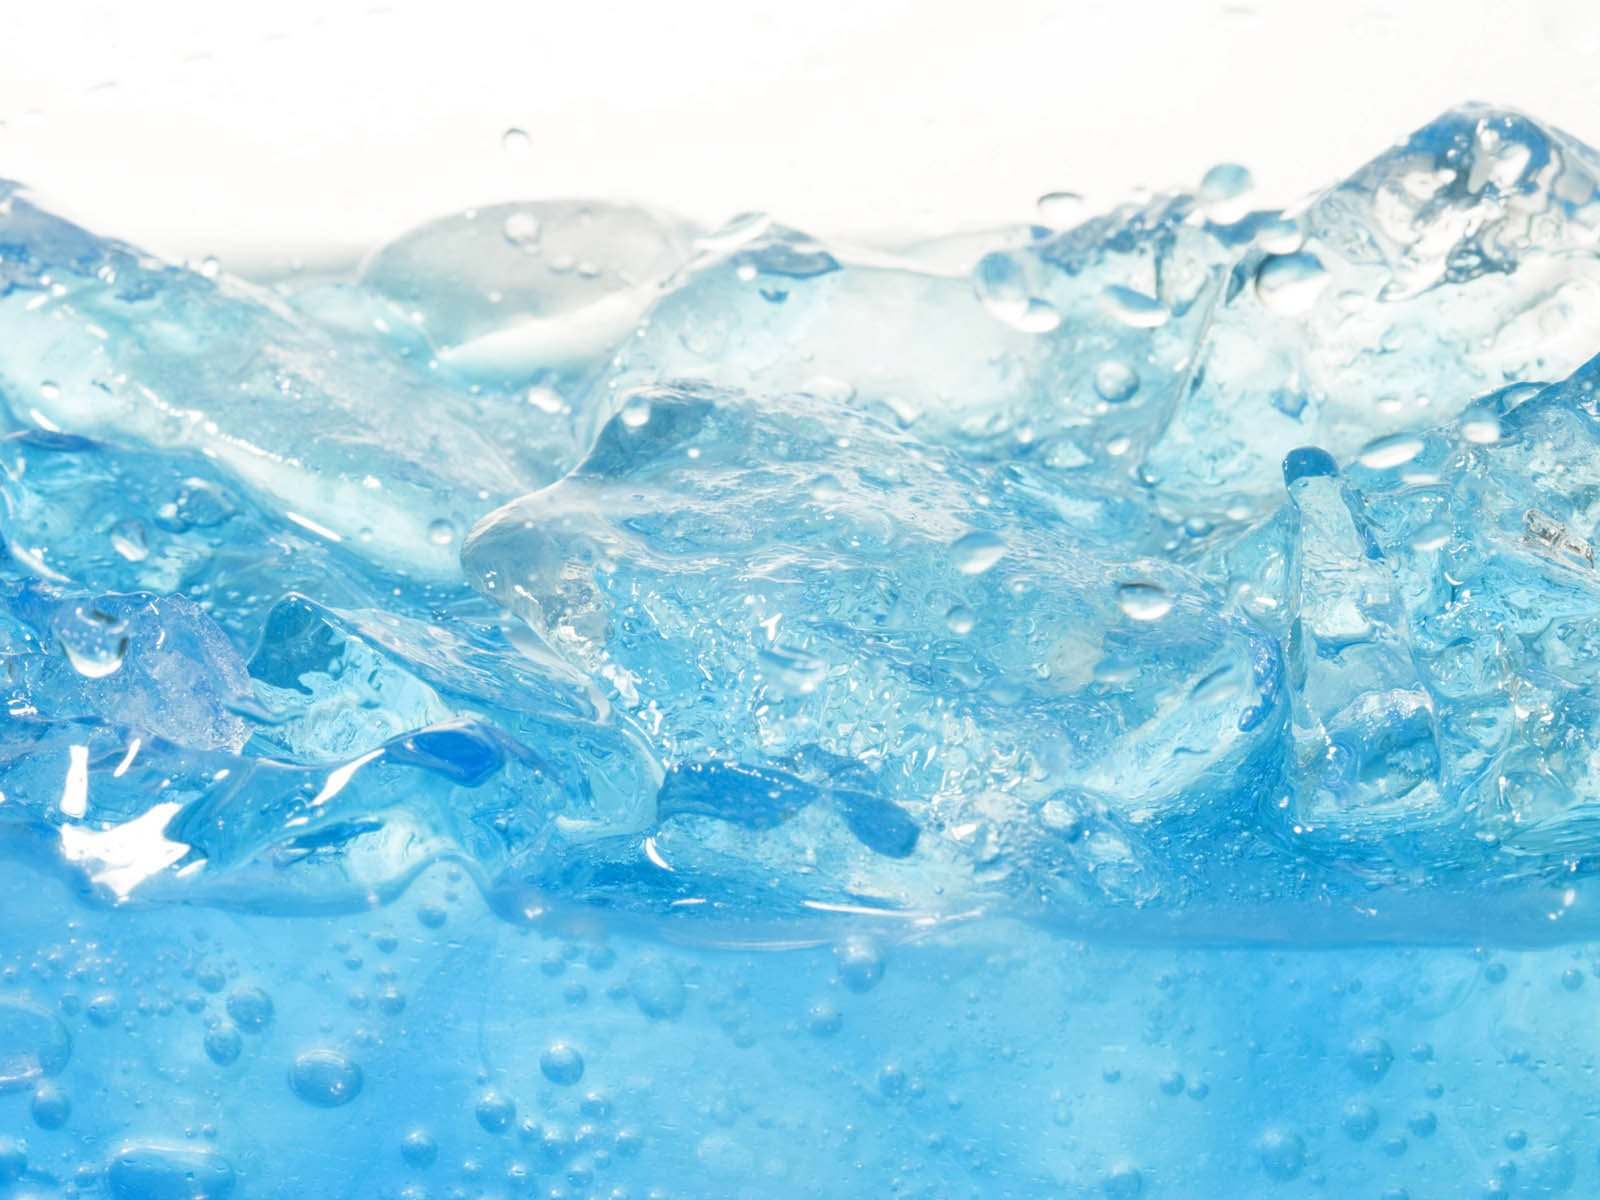 wallpapers Crystal Blue Water Wallpapers 1600x1200